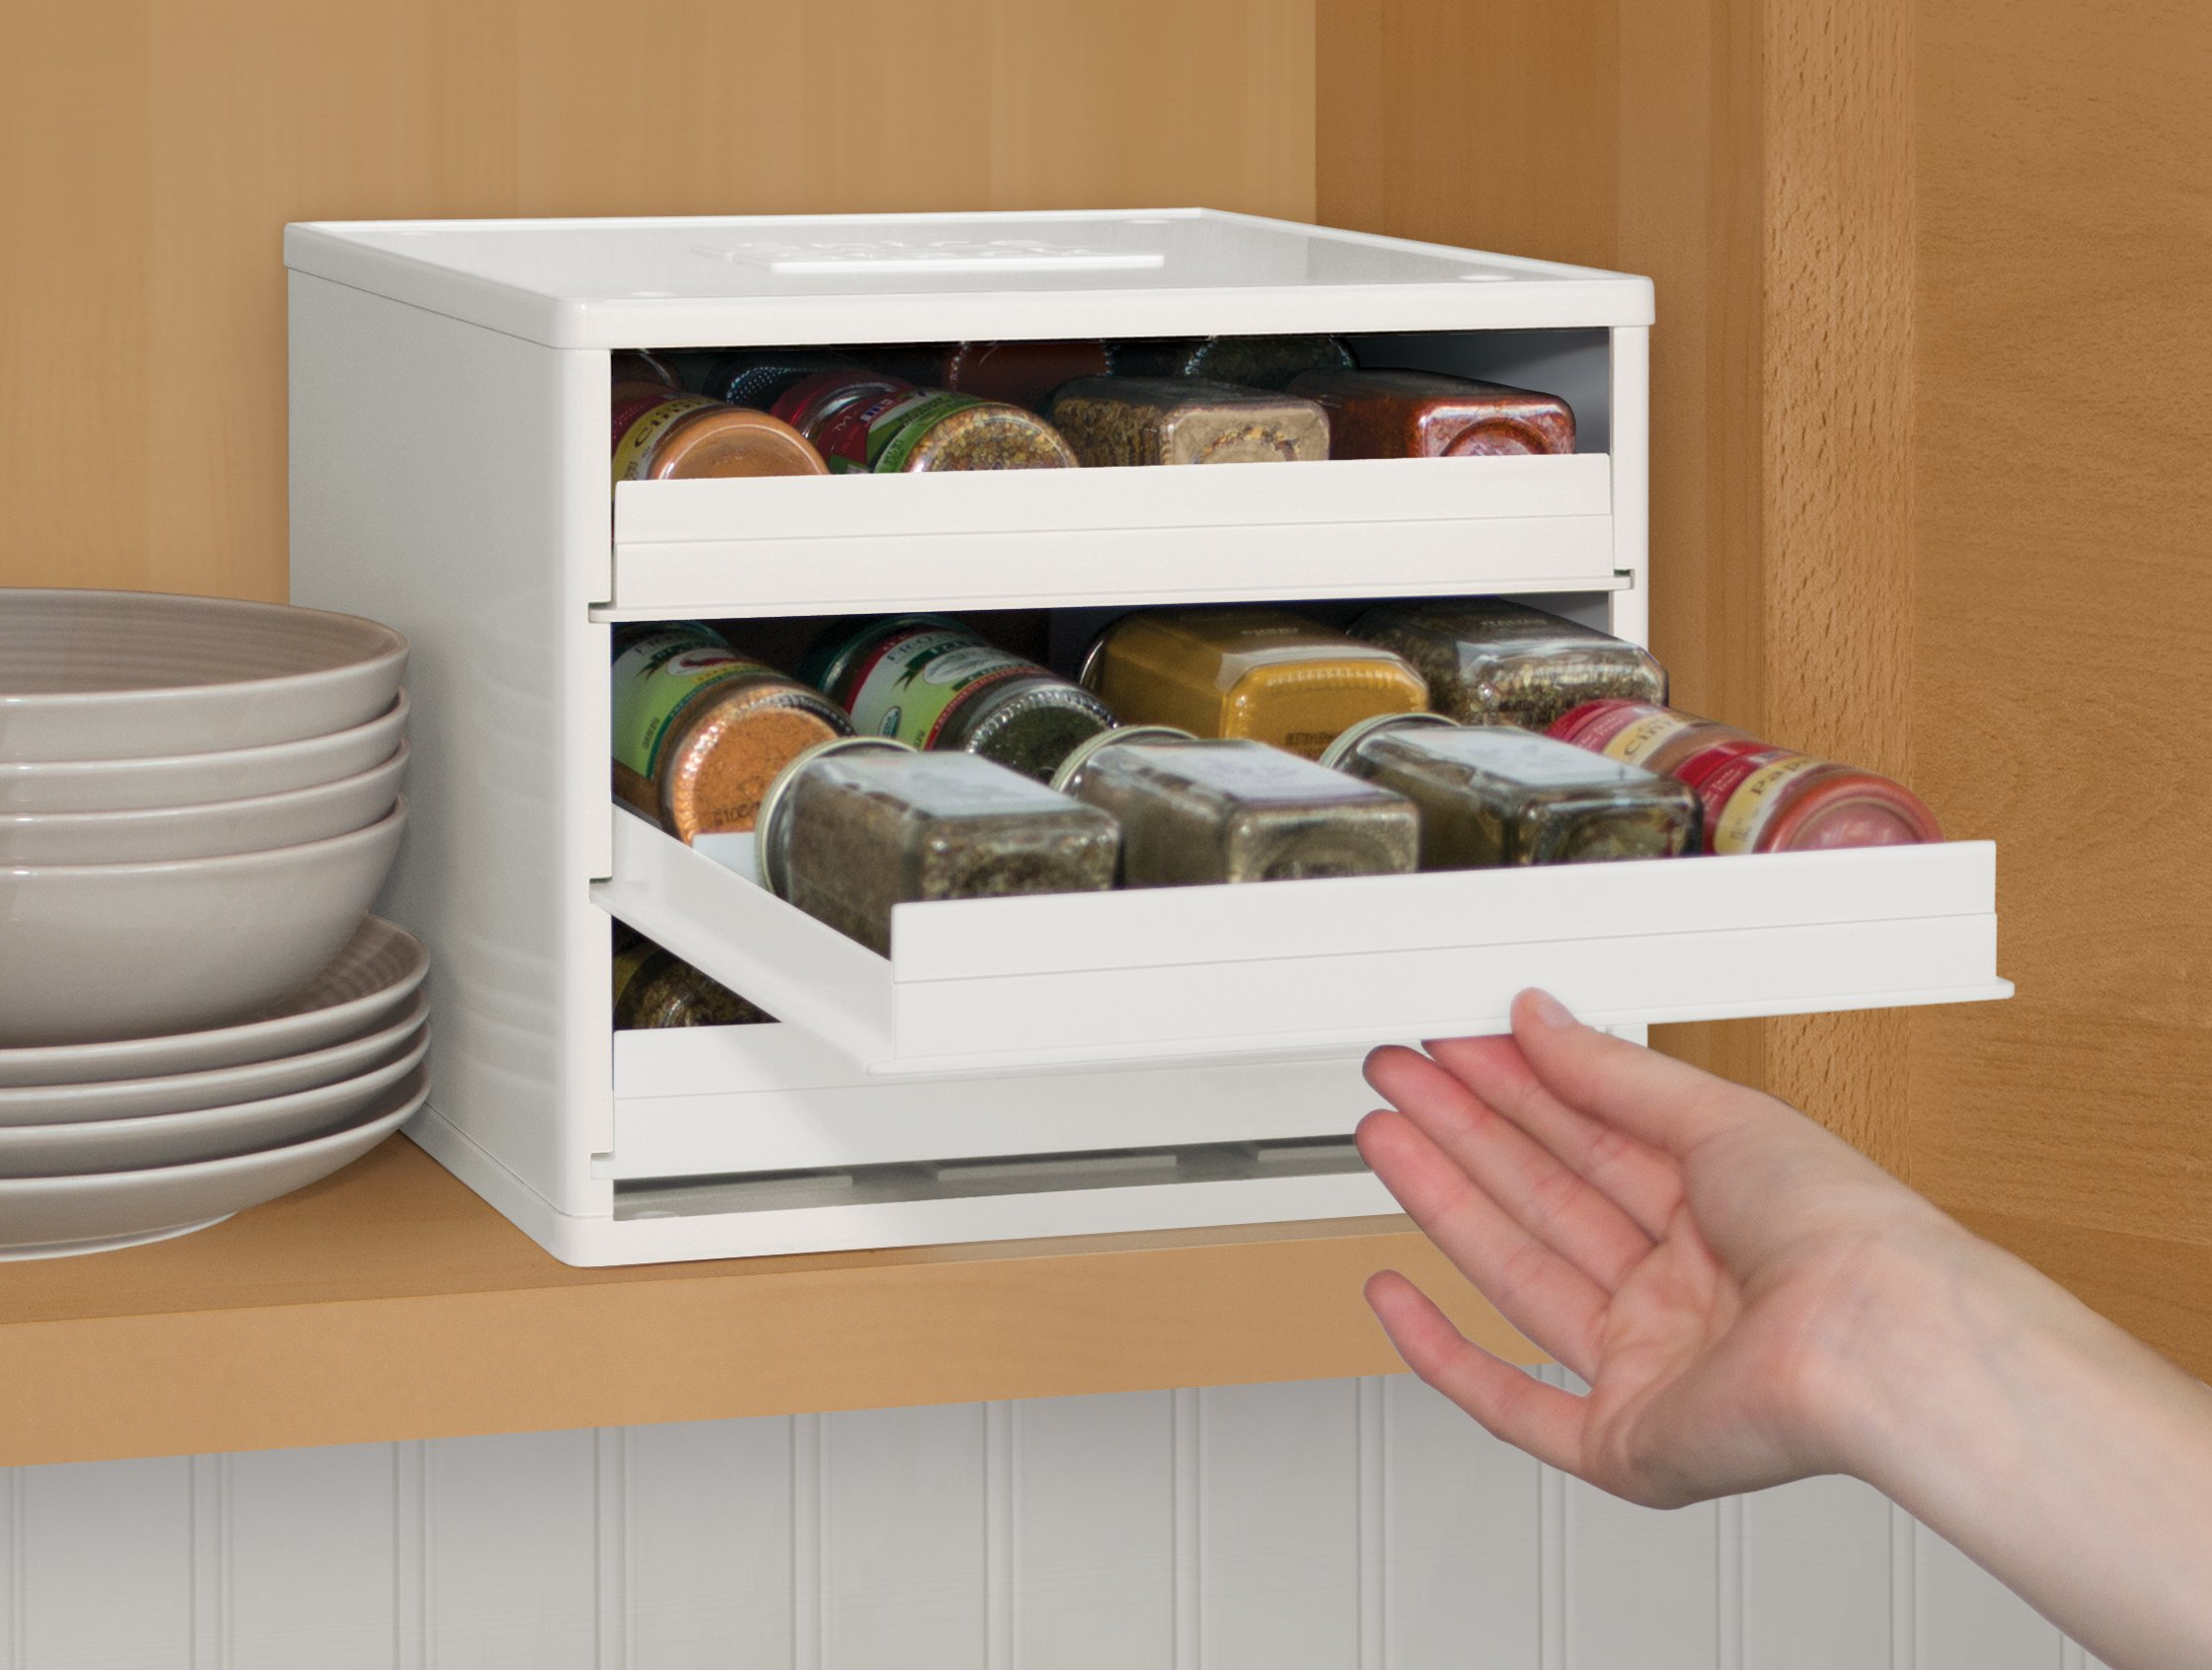 YouCopia Classic SpiceStack 24-Bottle Spice Organizer with Universal Drawers, White by YouCopia (Image #4)